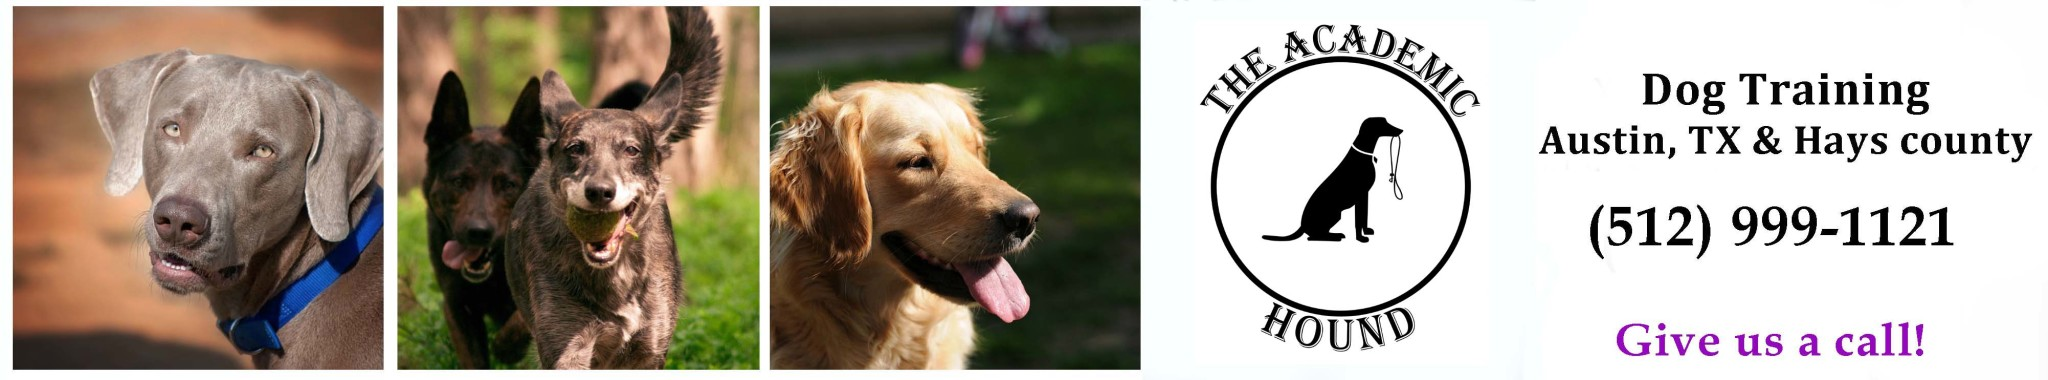 Academic Hound Dog Training Logo